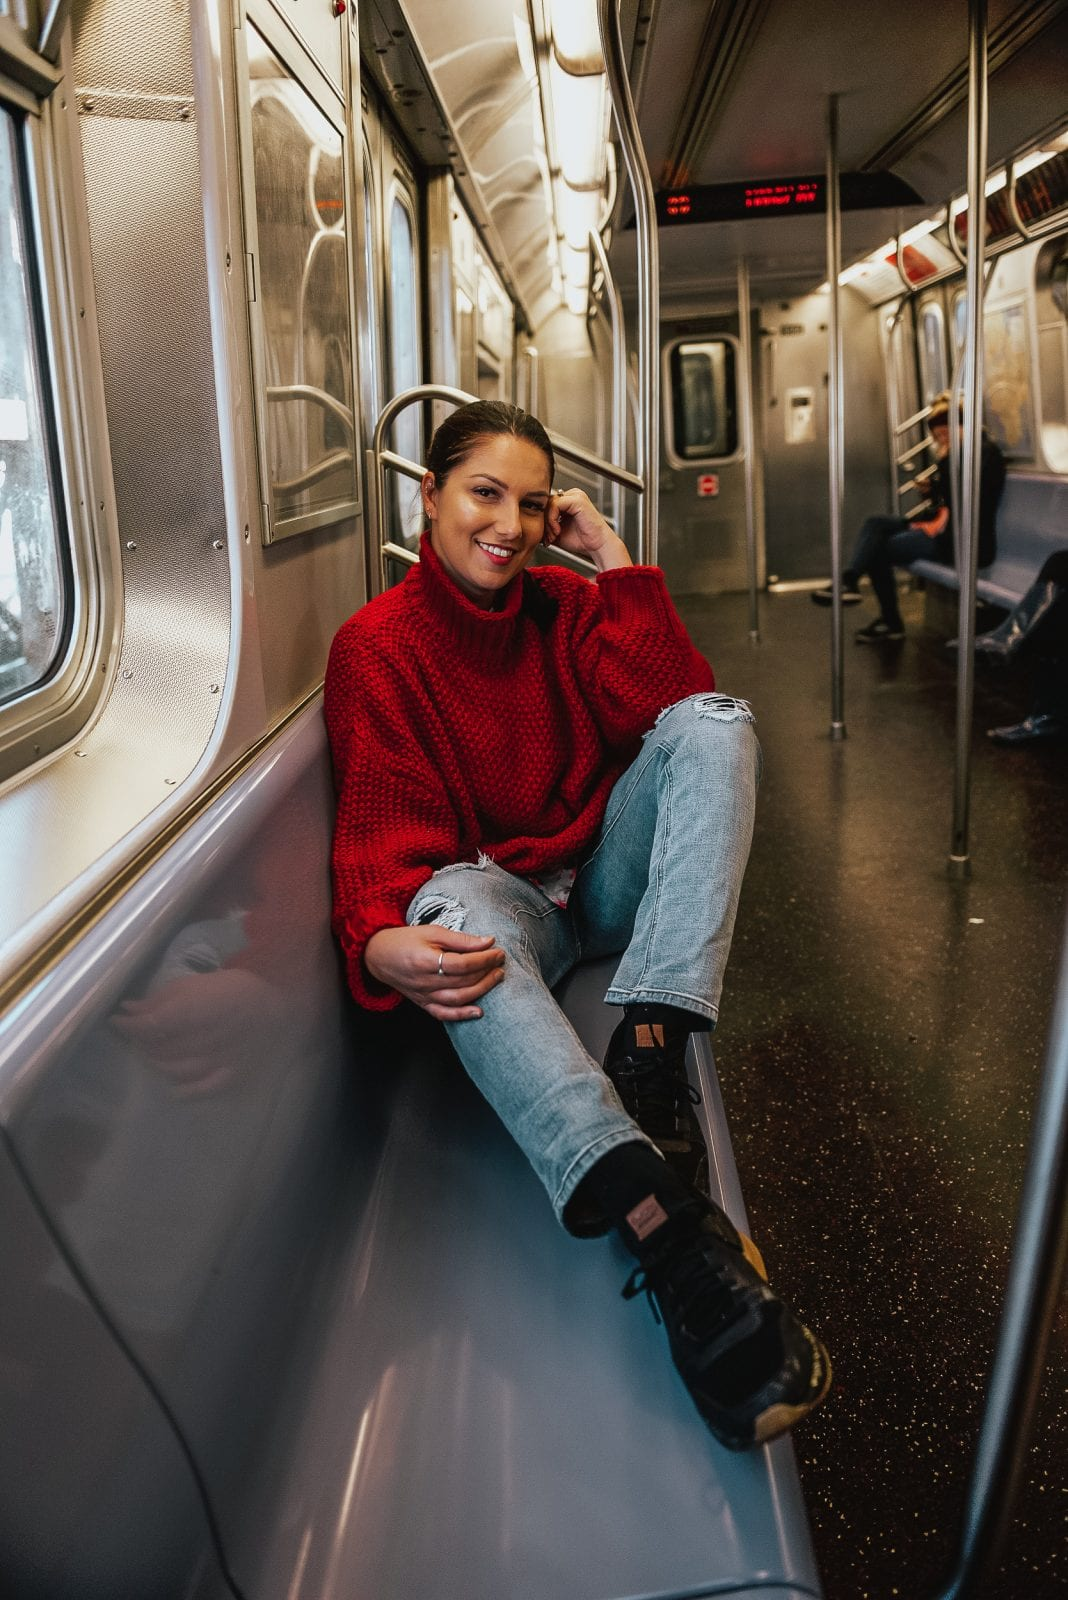 In this photo, I am sitting on the subway in New York heading to Brooklyn, in a red sweater, jeans and Dr Scholl's shoes.